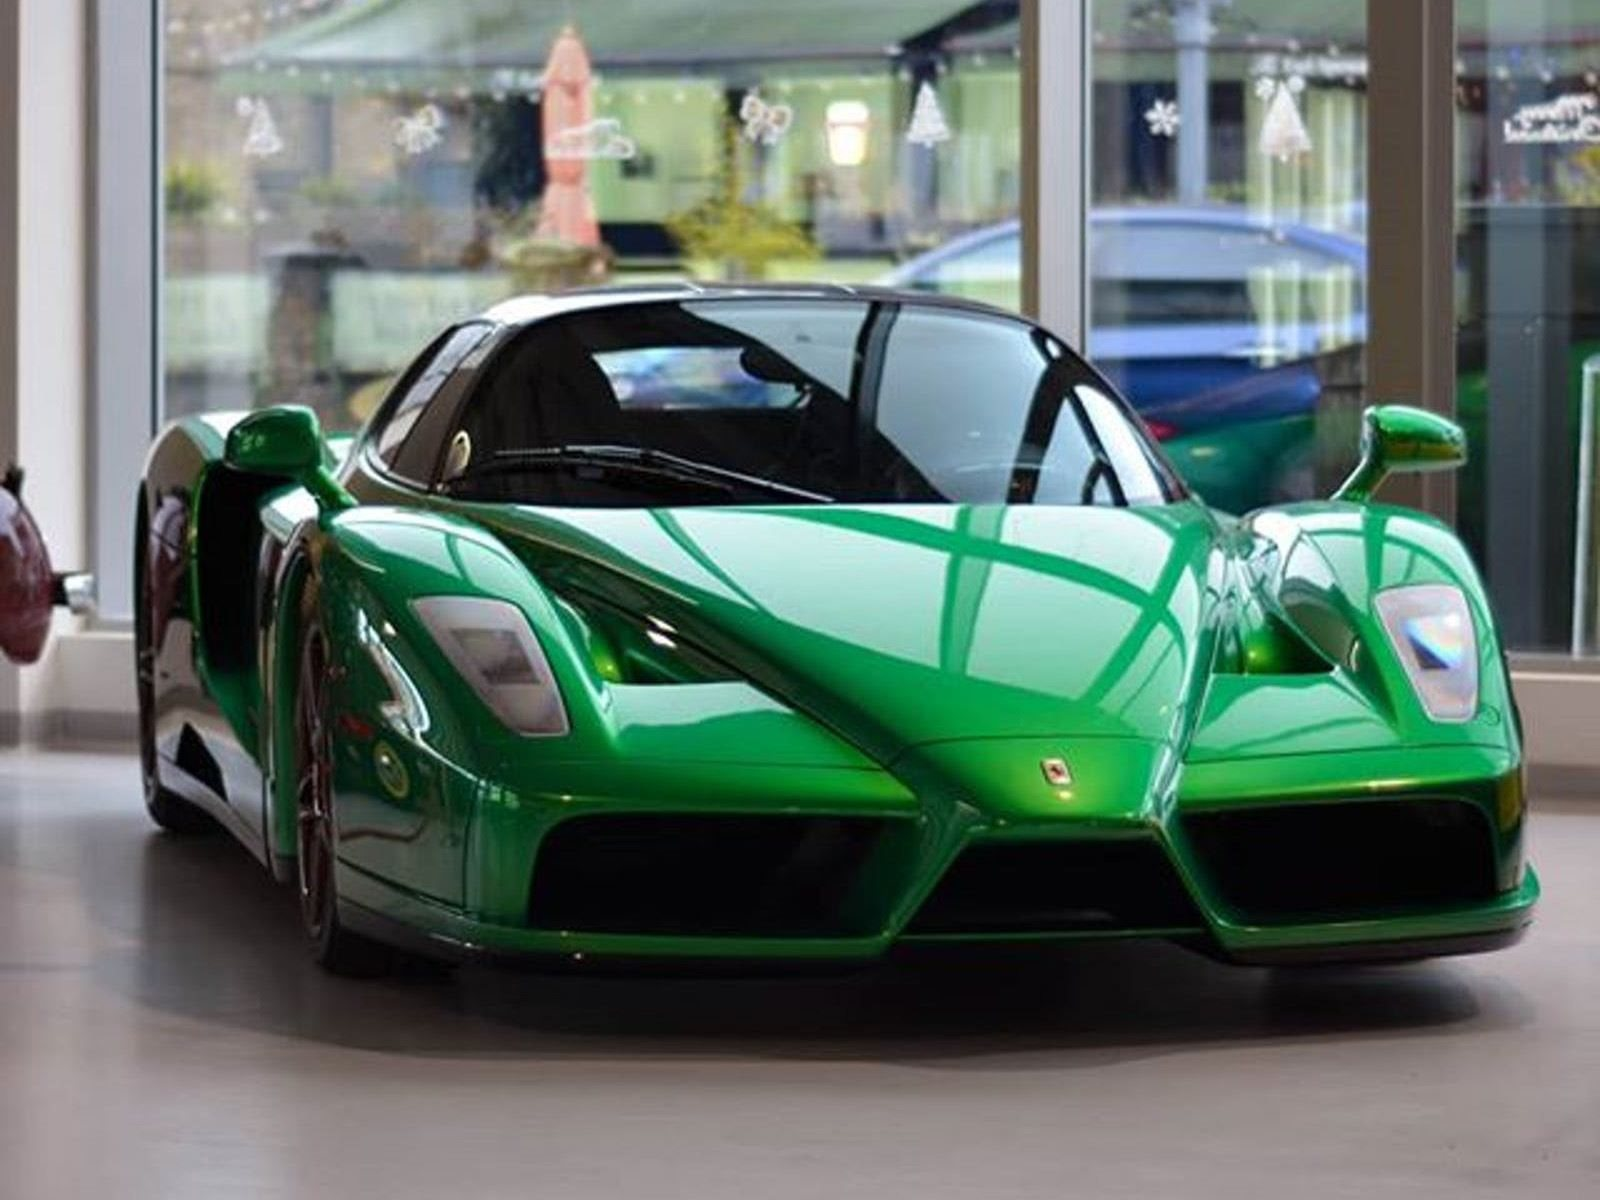 This Is The Only Emerald Green Ferrari Enzo In The World Carbuzz